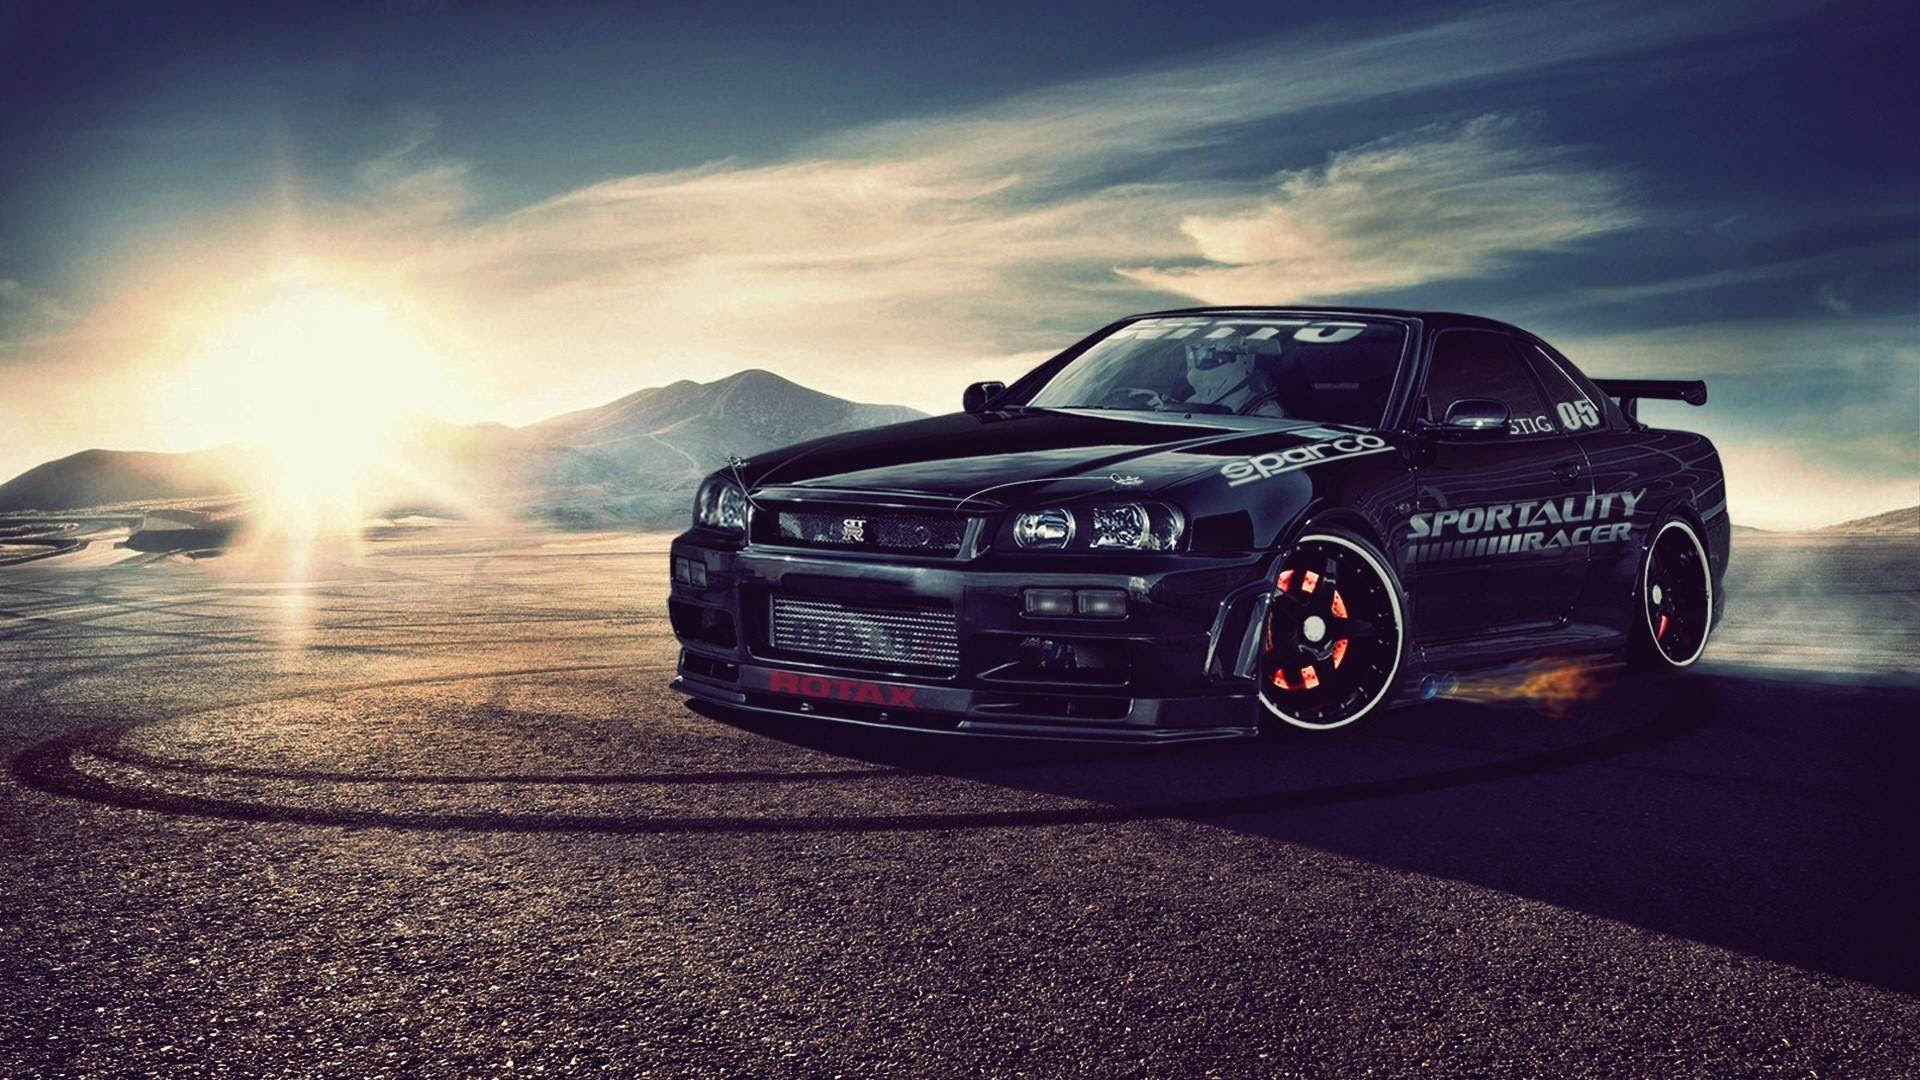 Nissan Skyline Gtr Wallpapers High Resolution Iphone Gtr Red